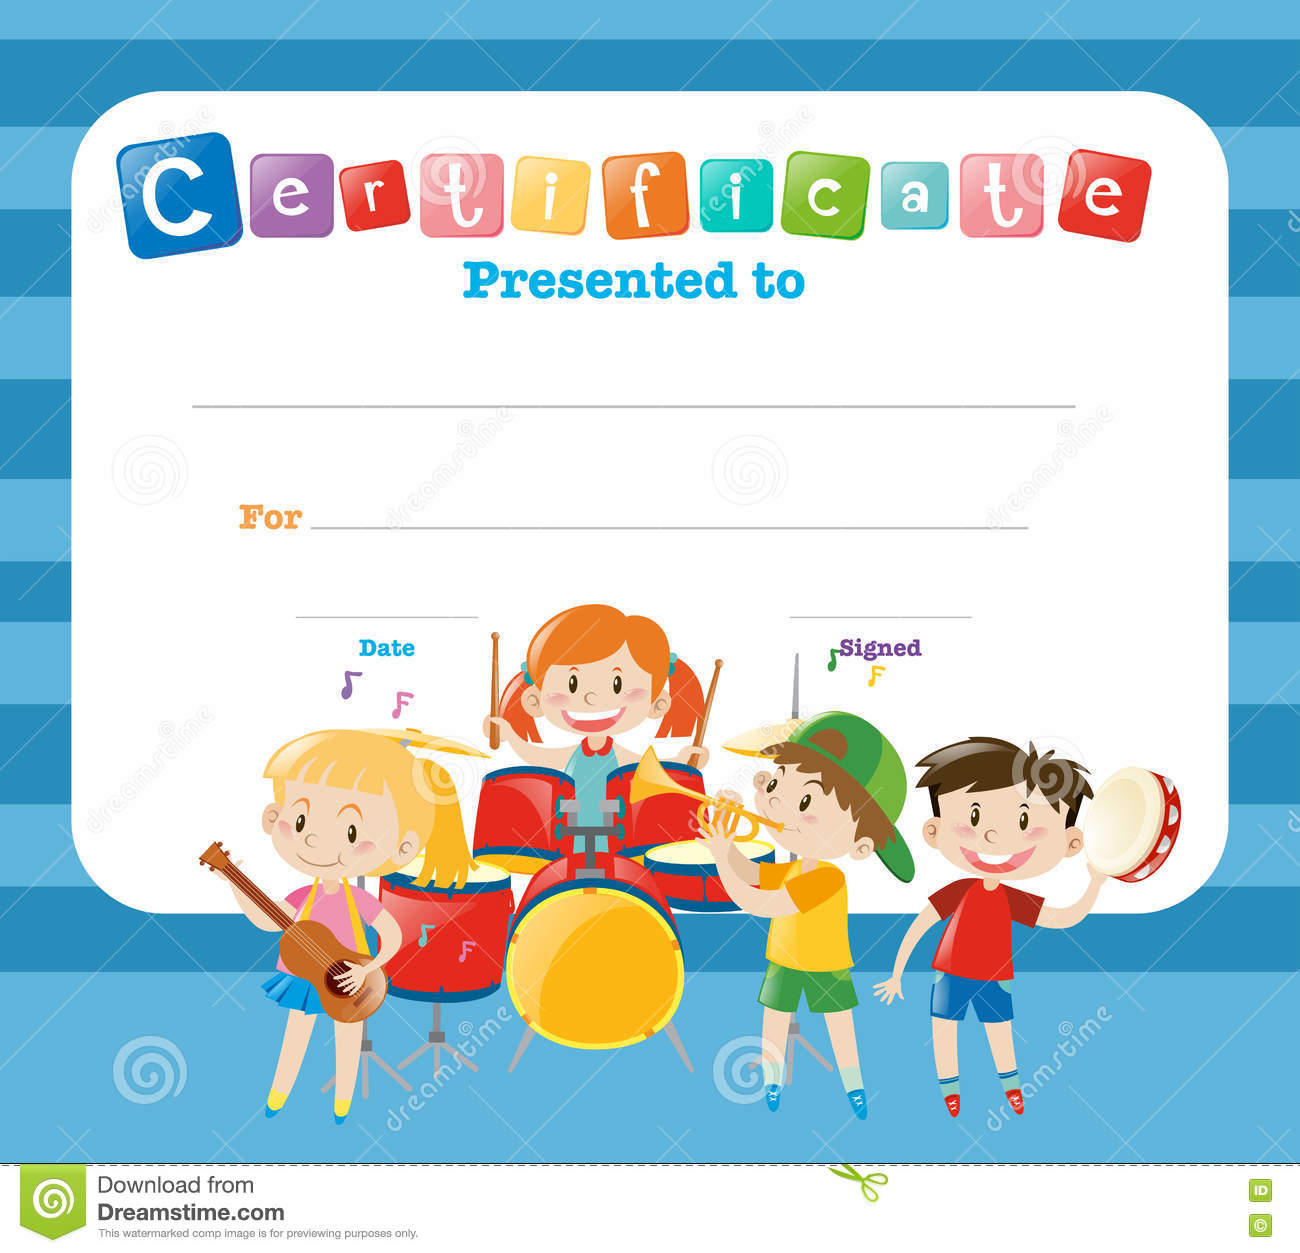 Doc564435 Certificate Template for Kids Certificate Template – Certificate Template for Kids